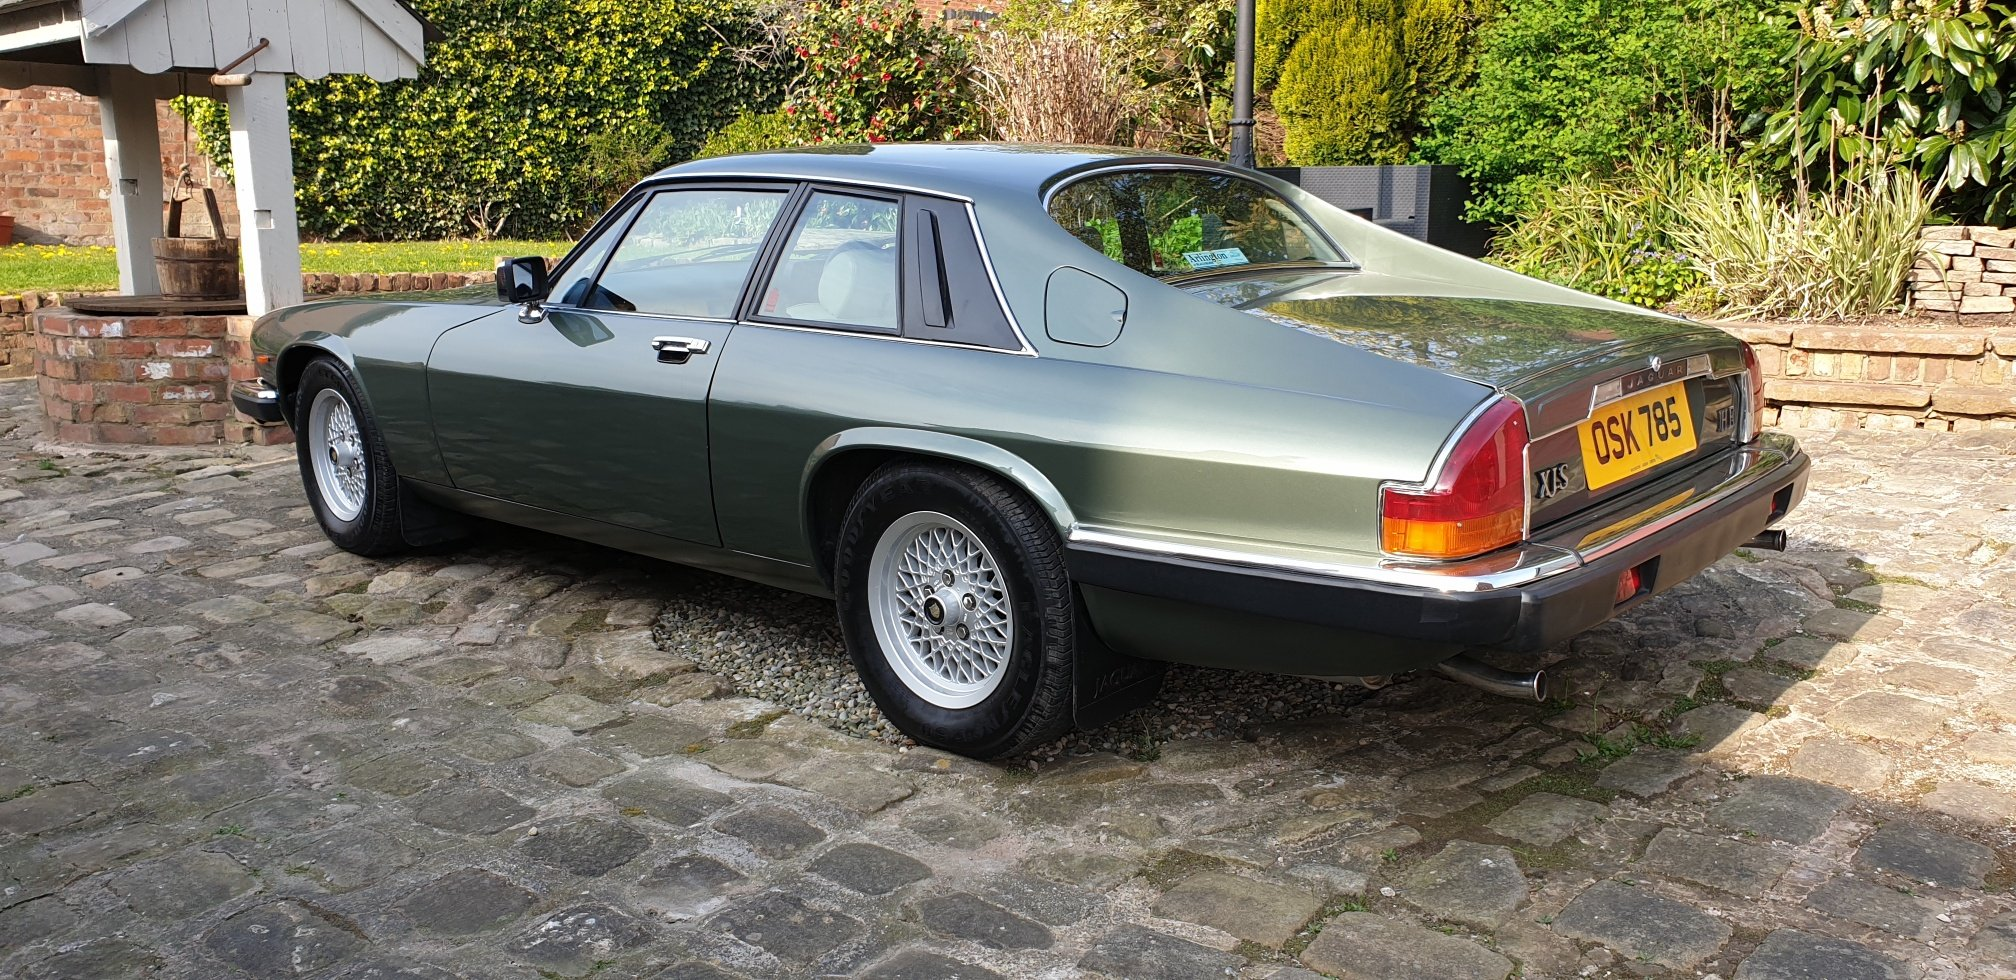 1985 Jaguar XJS V12 HE 39,000 Miles 2 Prev Owners For Sale (picture 5 of 6)